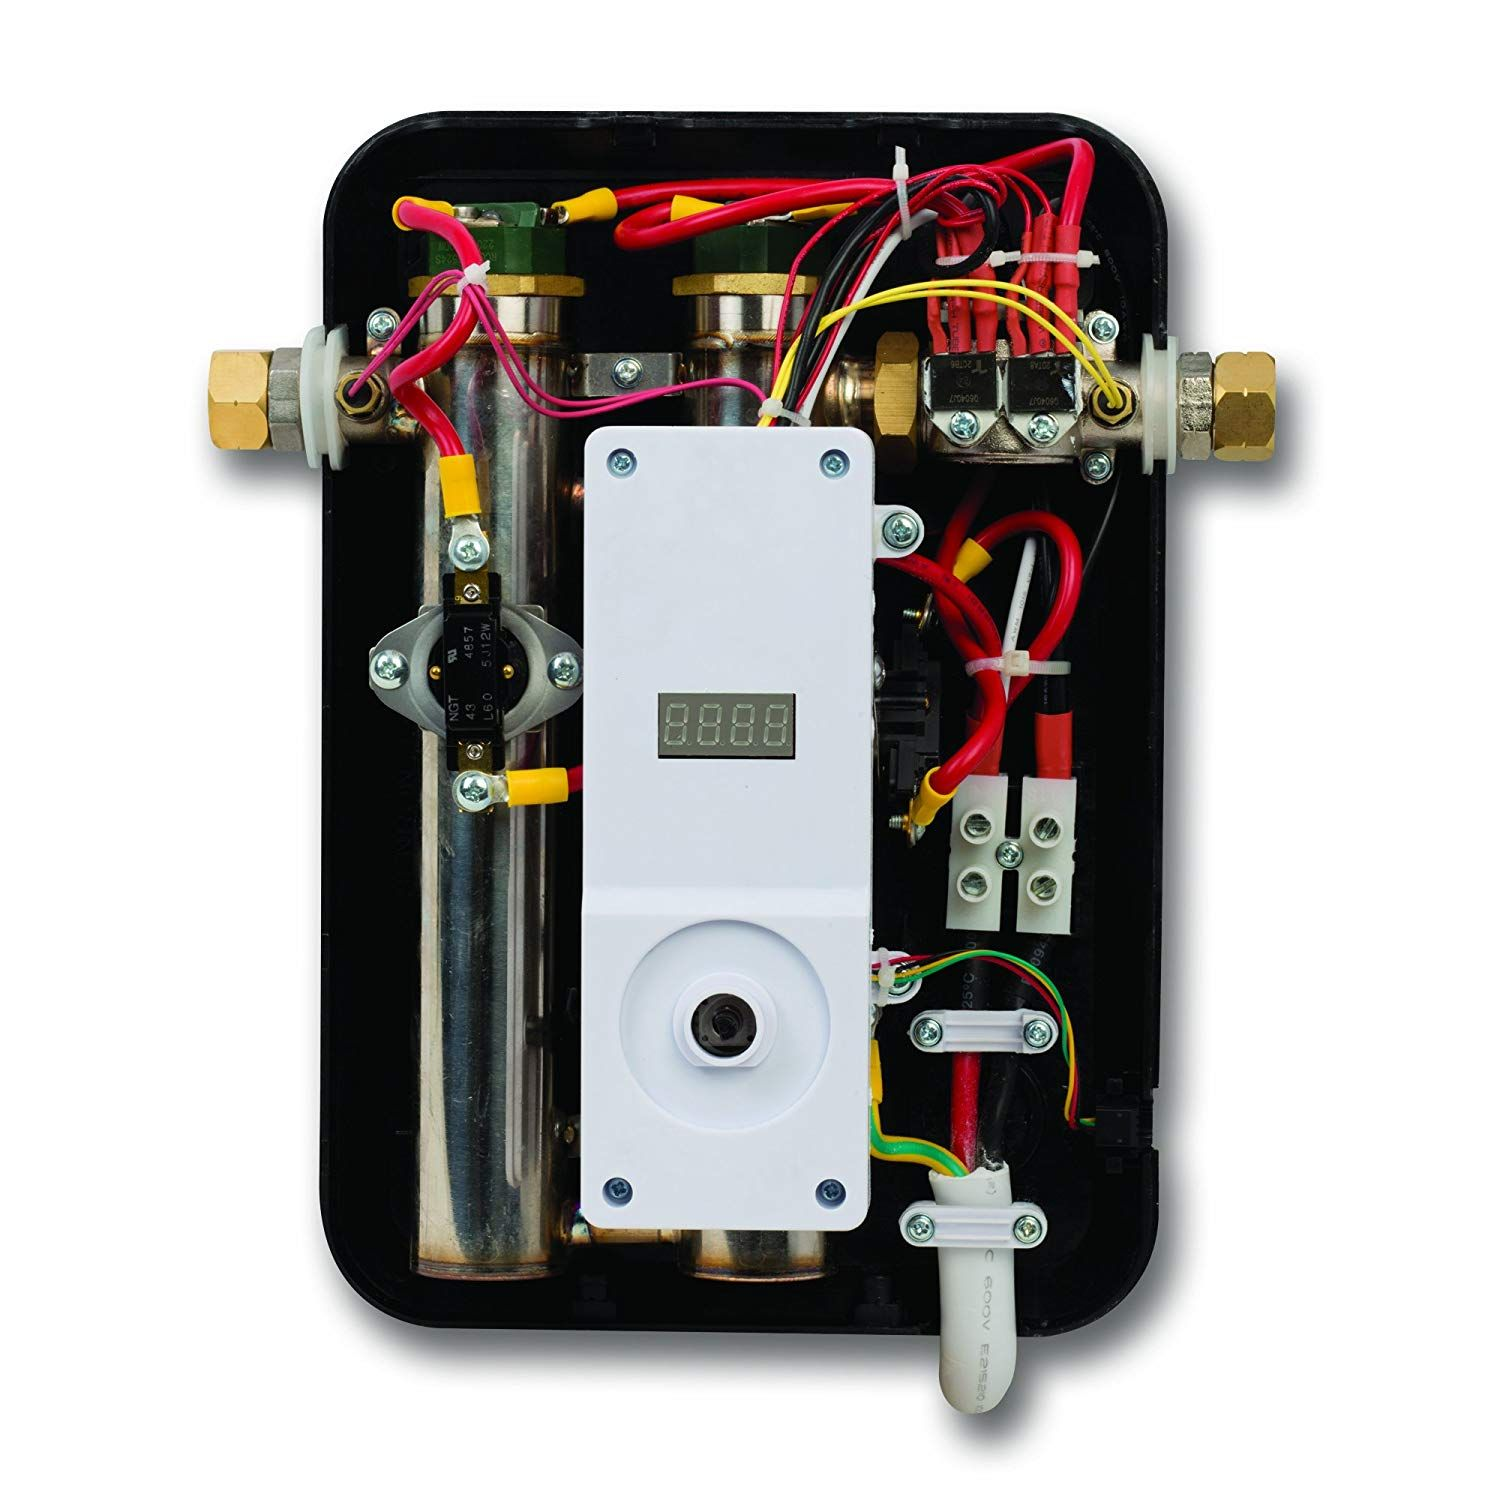 tankless water heater dubai i tankless hot water heater, 13kw at 240 volts  with patented self modulating technology